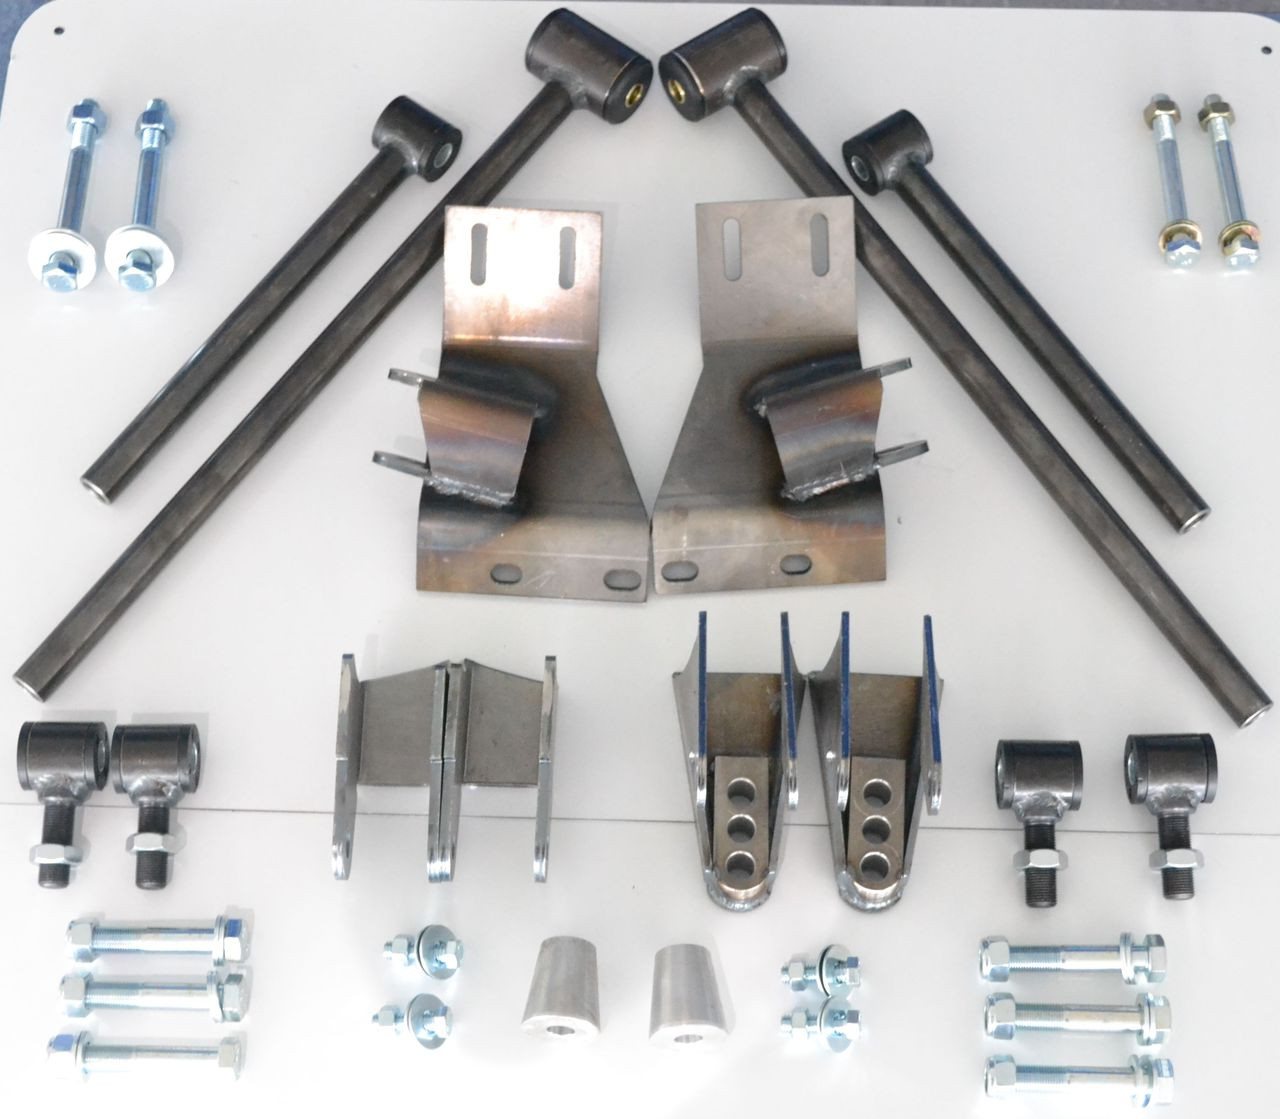 4-Link Rear Rear Suspension Basic Kit - Code 504, LLC